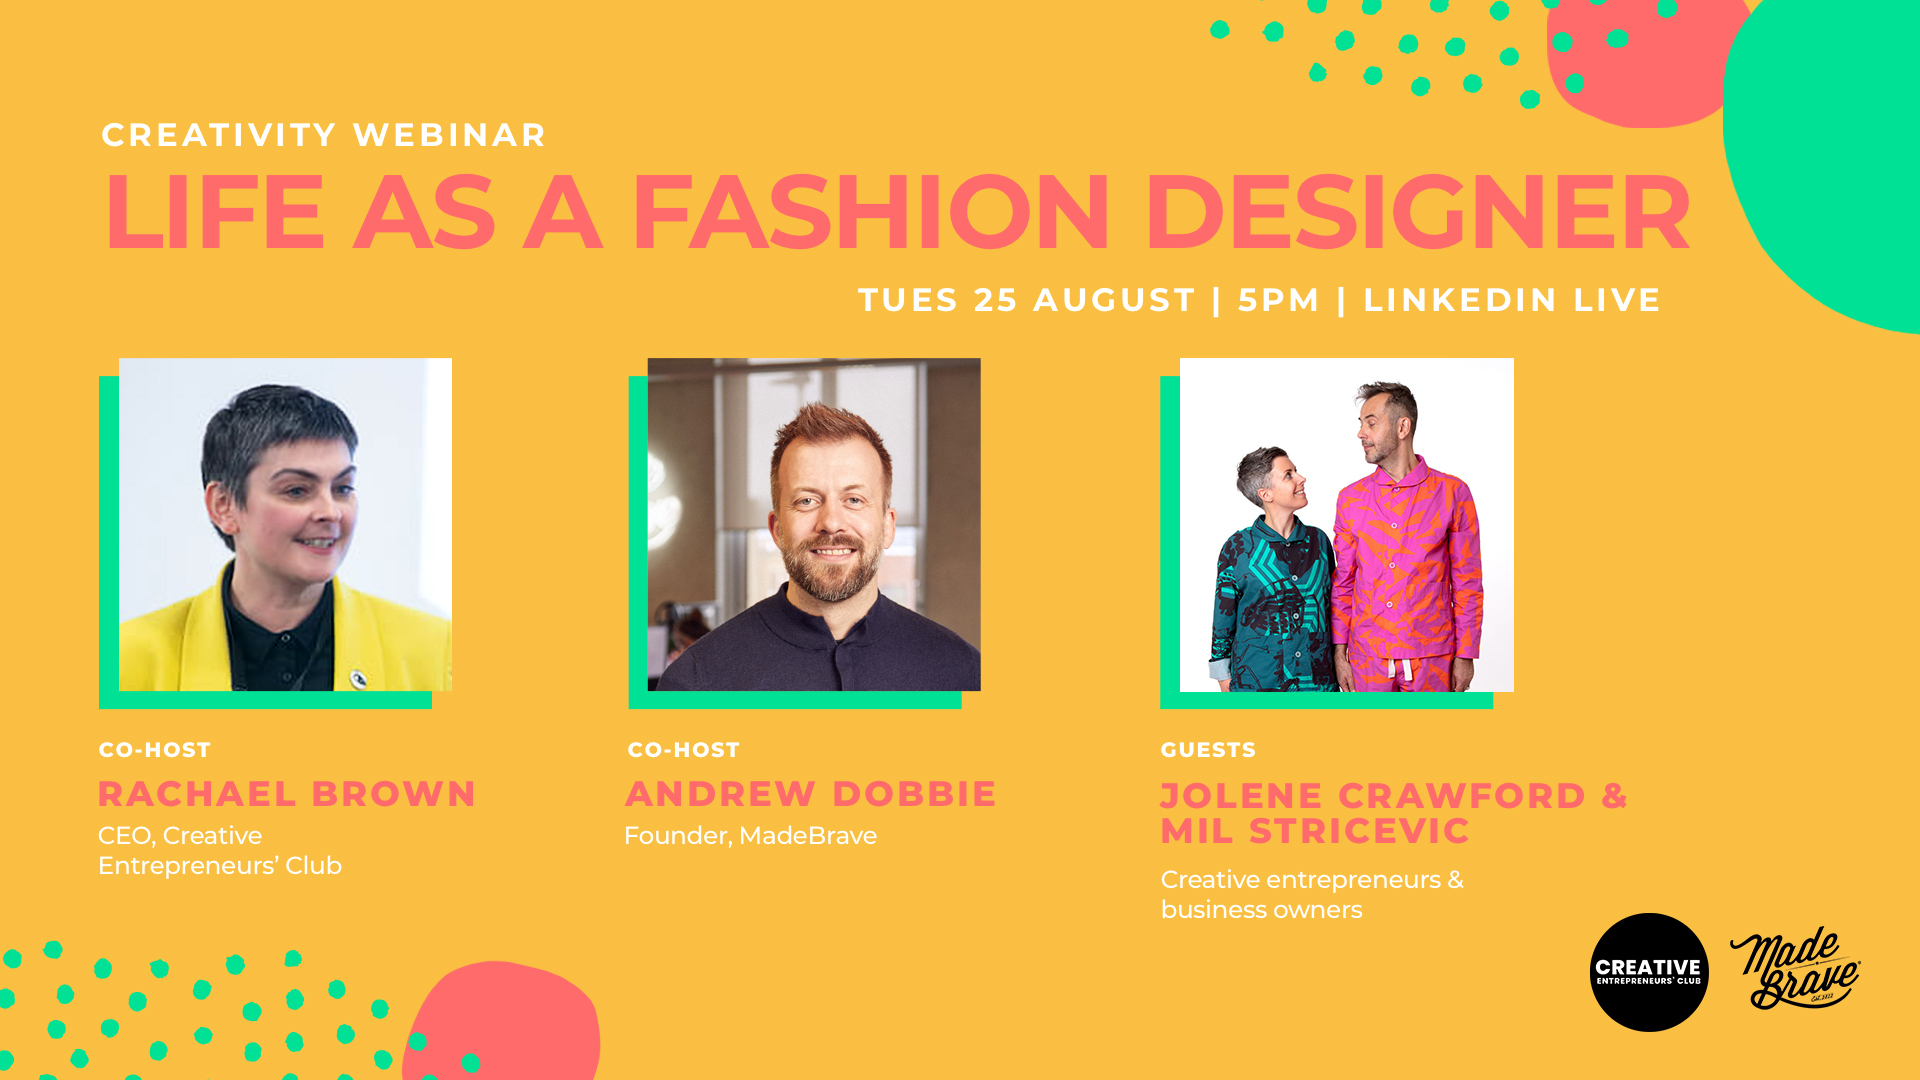 Life as a fashion designer with Jolene Crawford, Mil Stricevic & MadeBrave